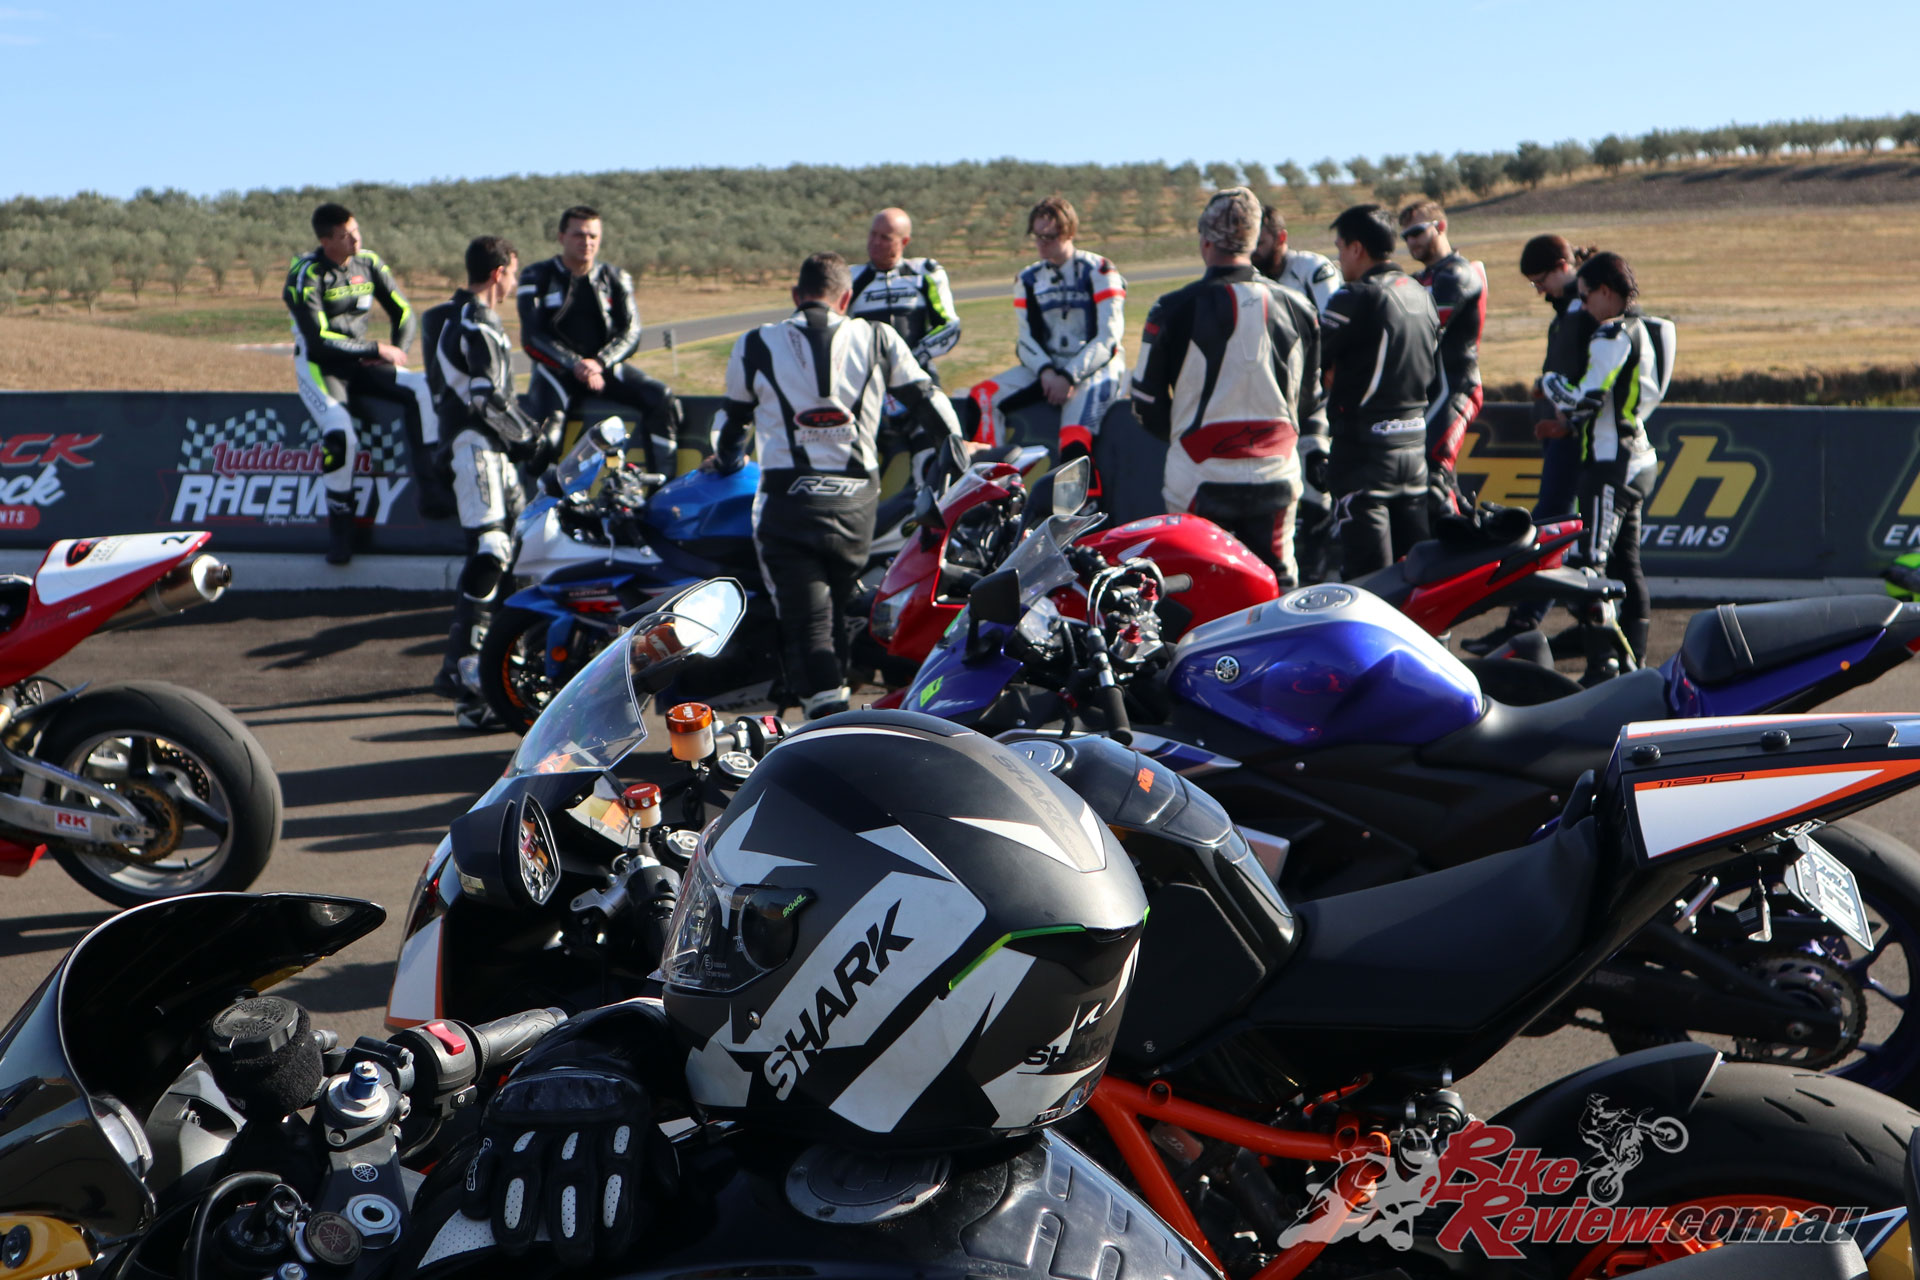 Despite the varying levels of riding experience everyone was given valuable input and advice